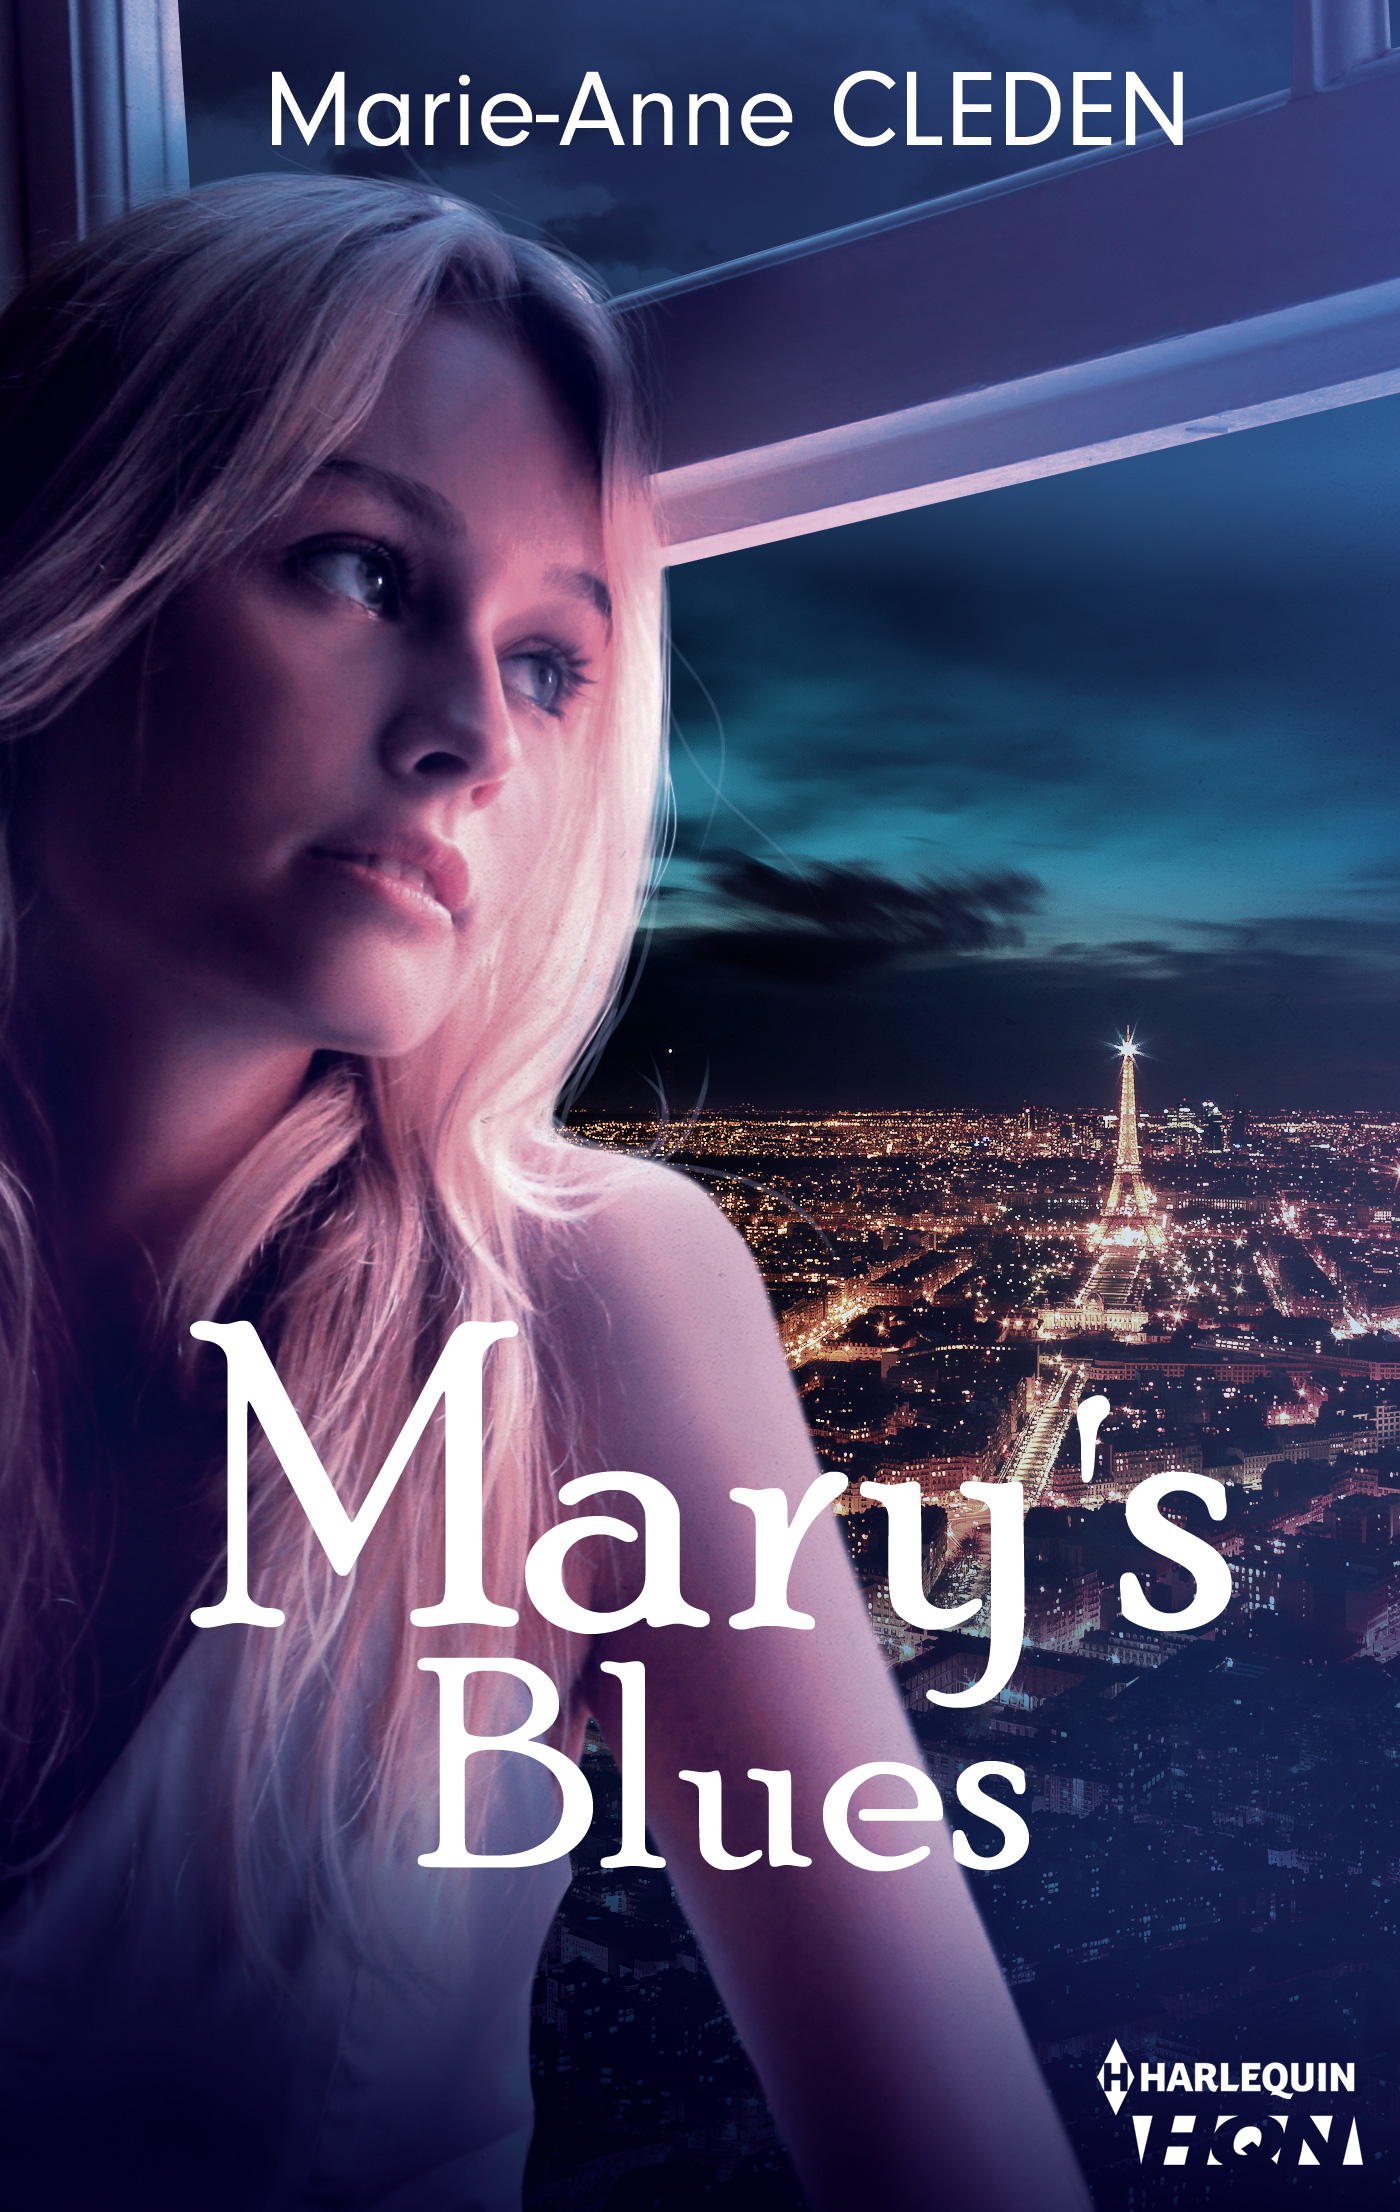 Mary's blues